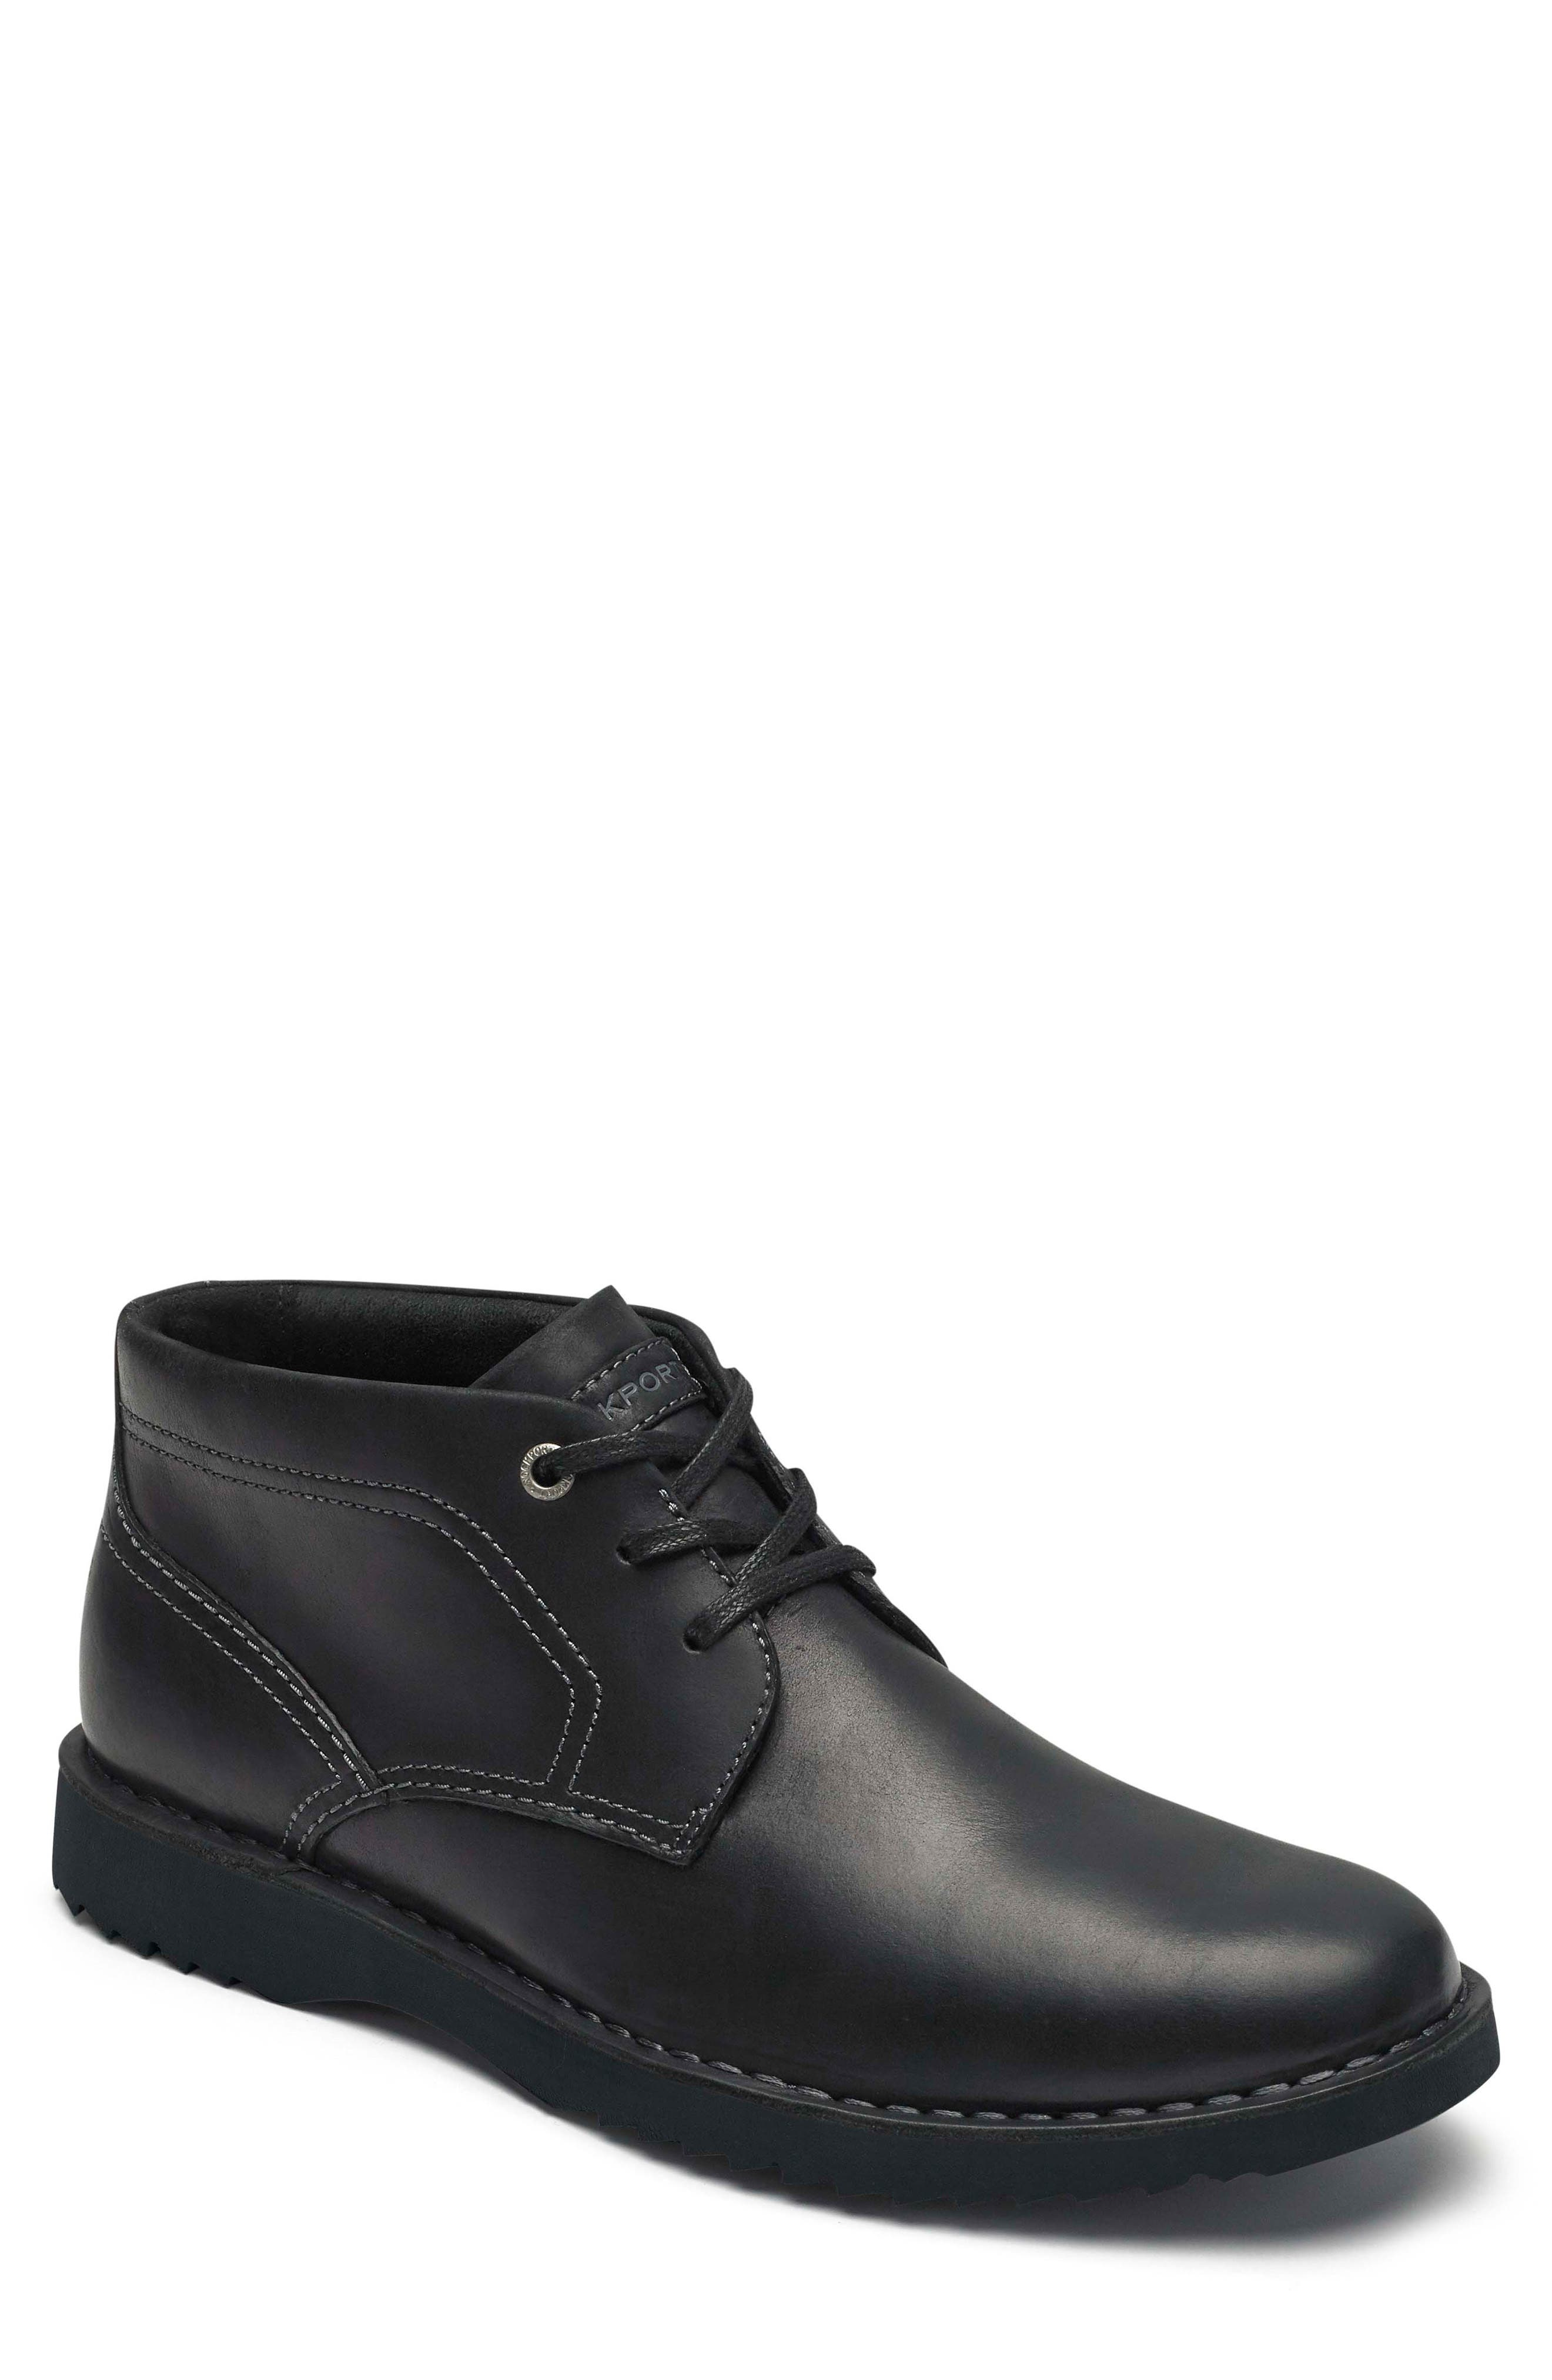 Cabot Chukka Boot,                         Main,                         color, BLACK LEATHER